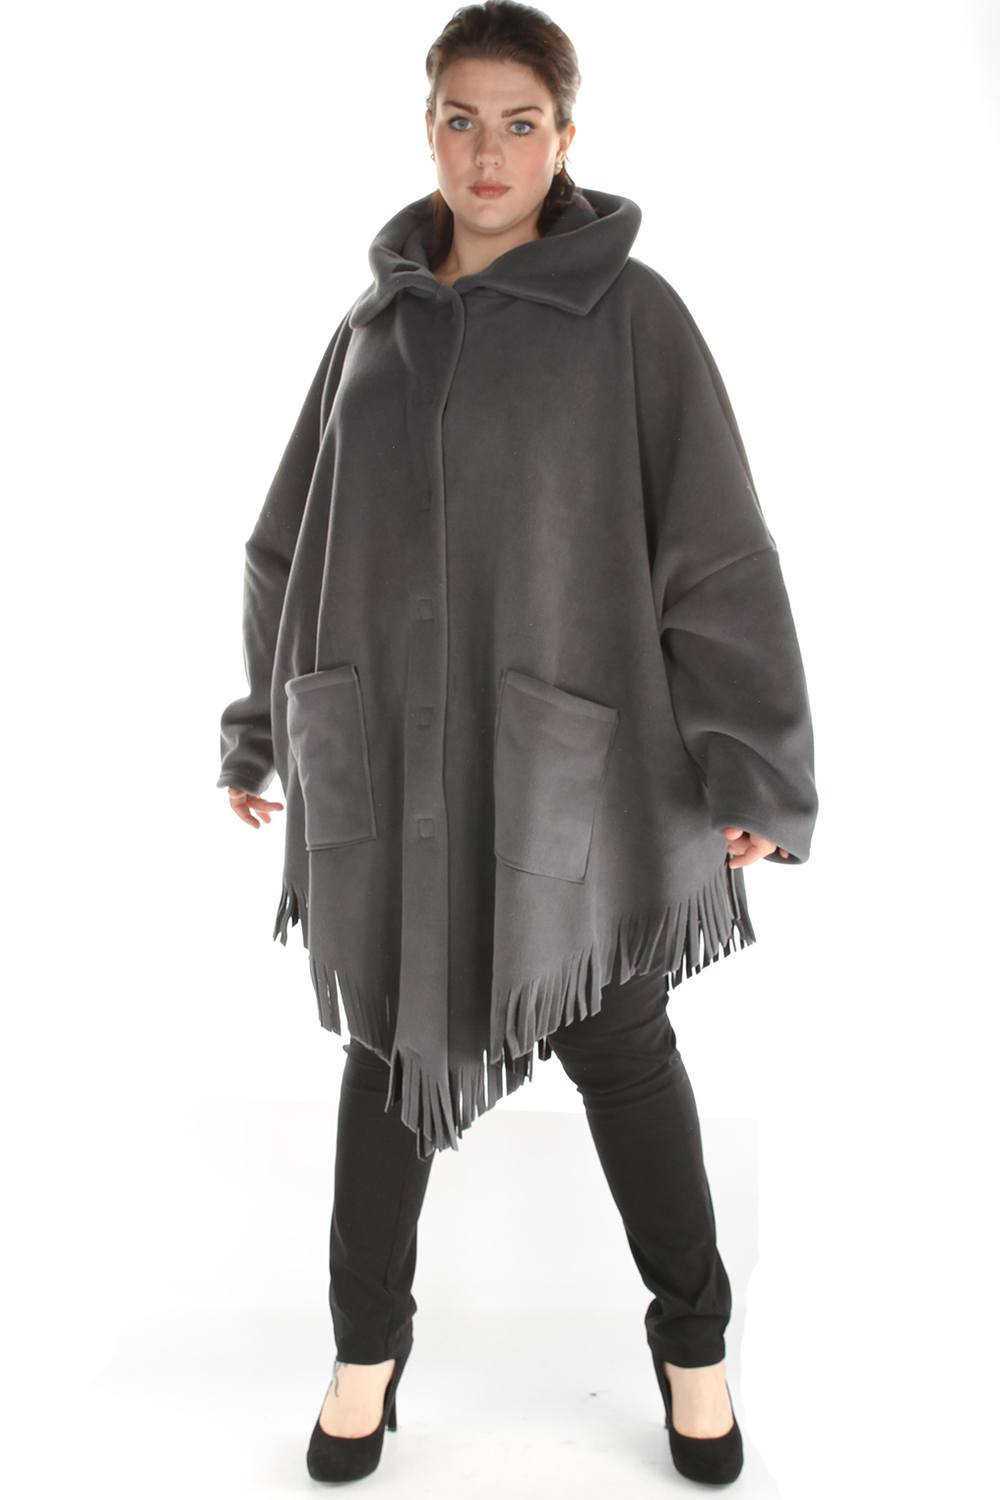 Jas Boris poncho model